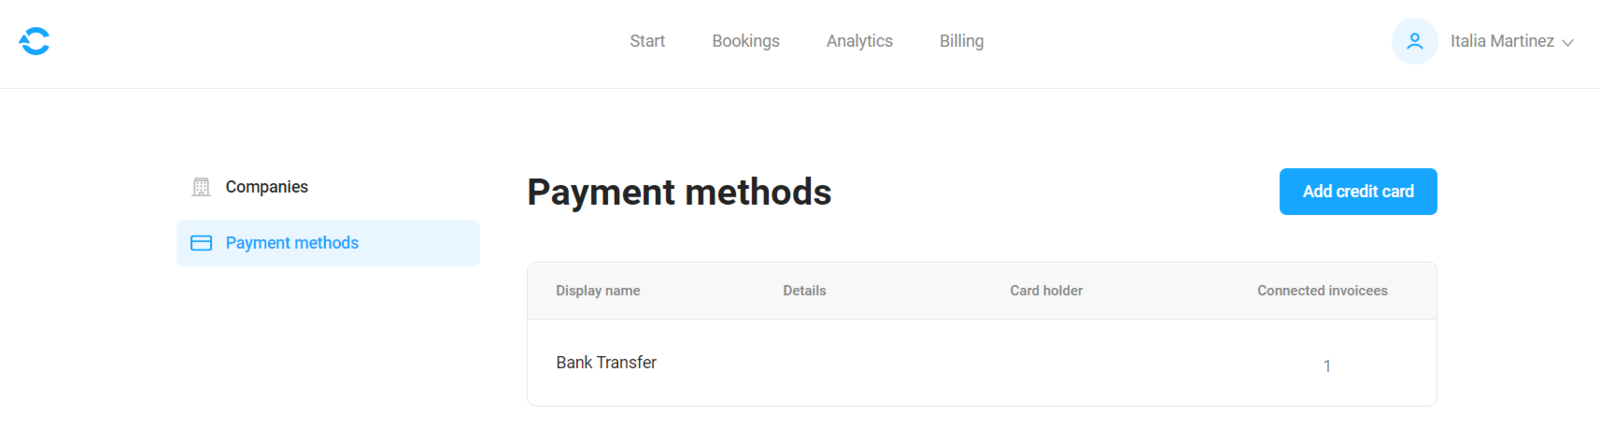 Payment methods page